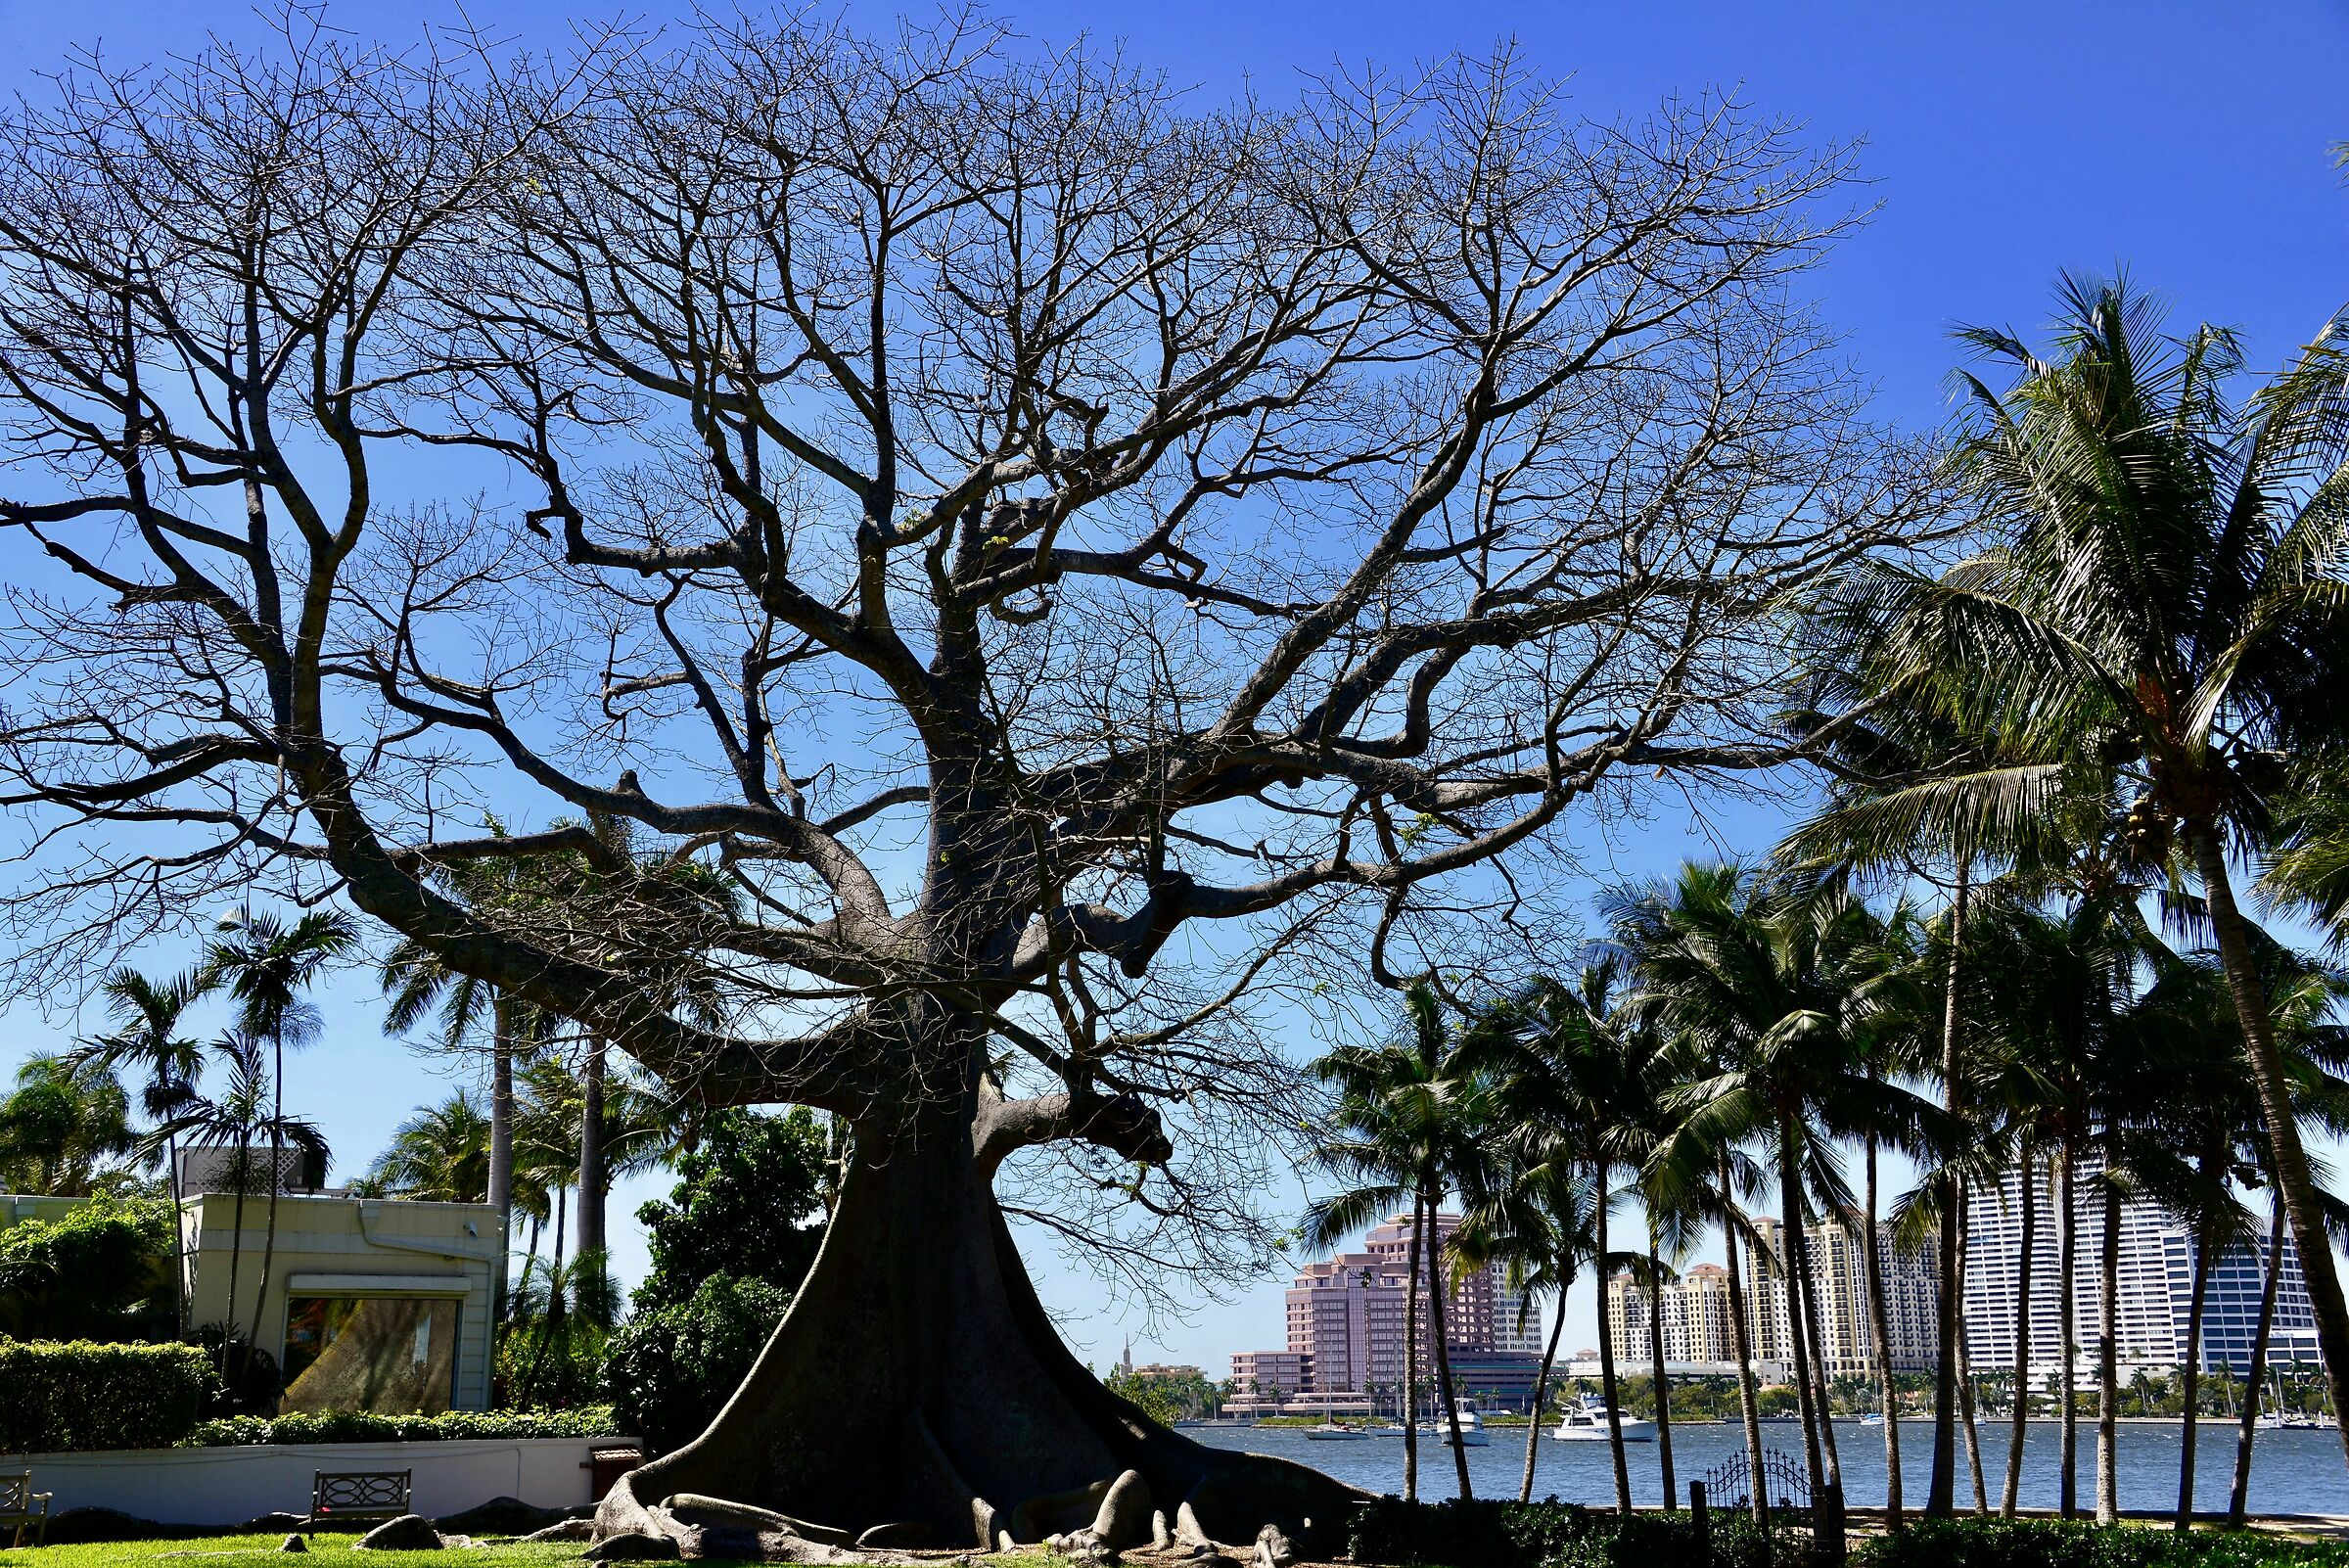 One of the oldest trees in Florida - West Palm Beach...